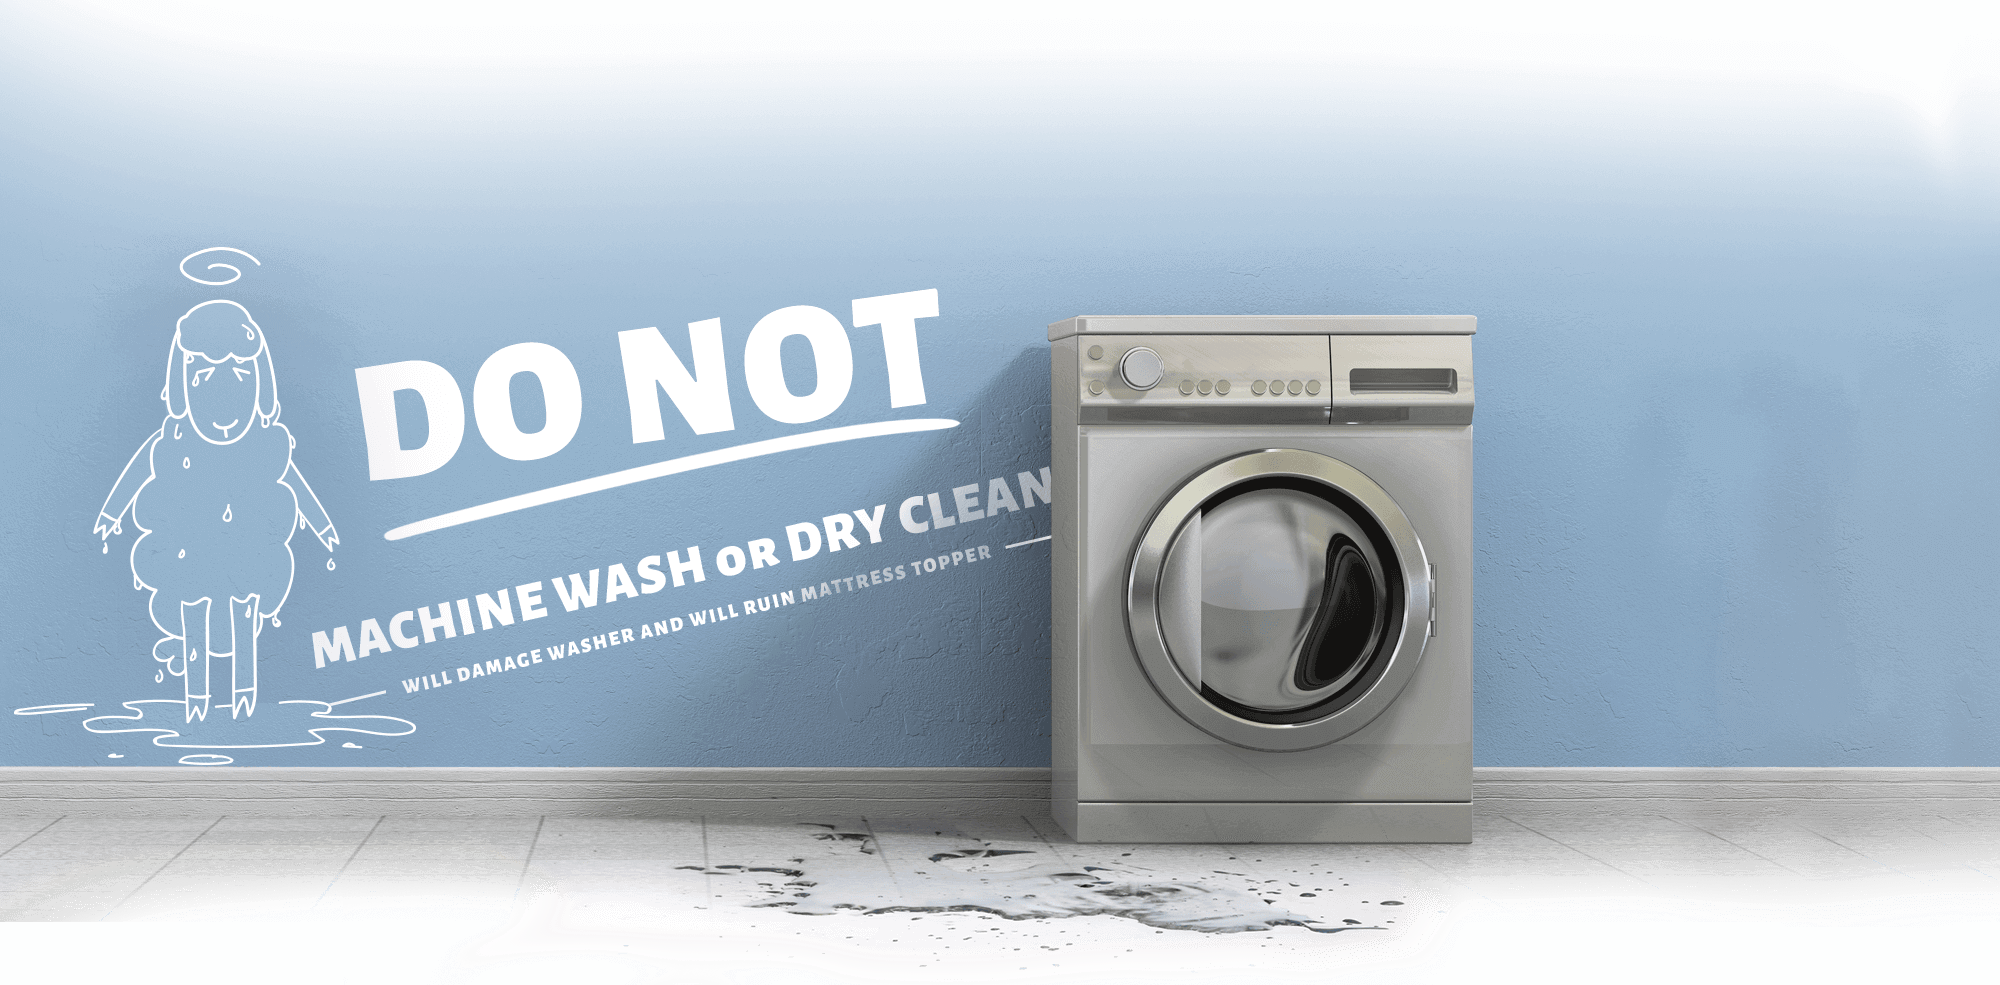 Do Not Machine Wash or Dry Clean - Will damage washer and will ruin mattress topper